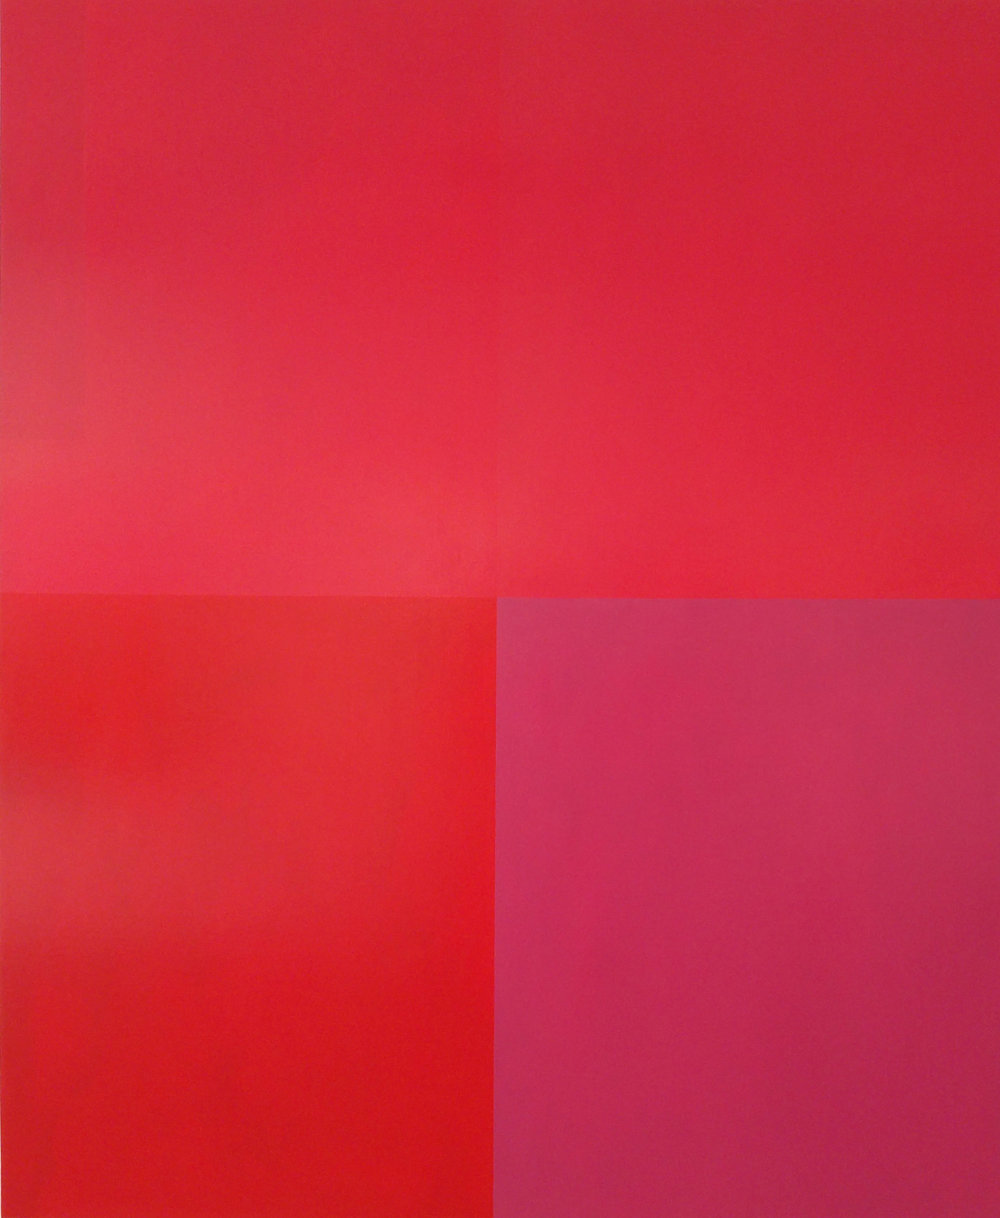 Persephone Never Lied #5, 67 x 55 x 13 inches / 170 x 139 x 8 cm, acrylic on canvas, 2016